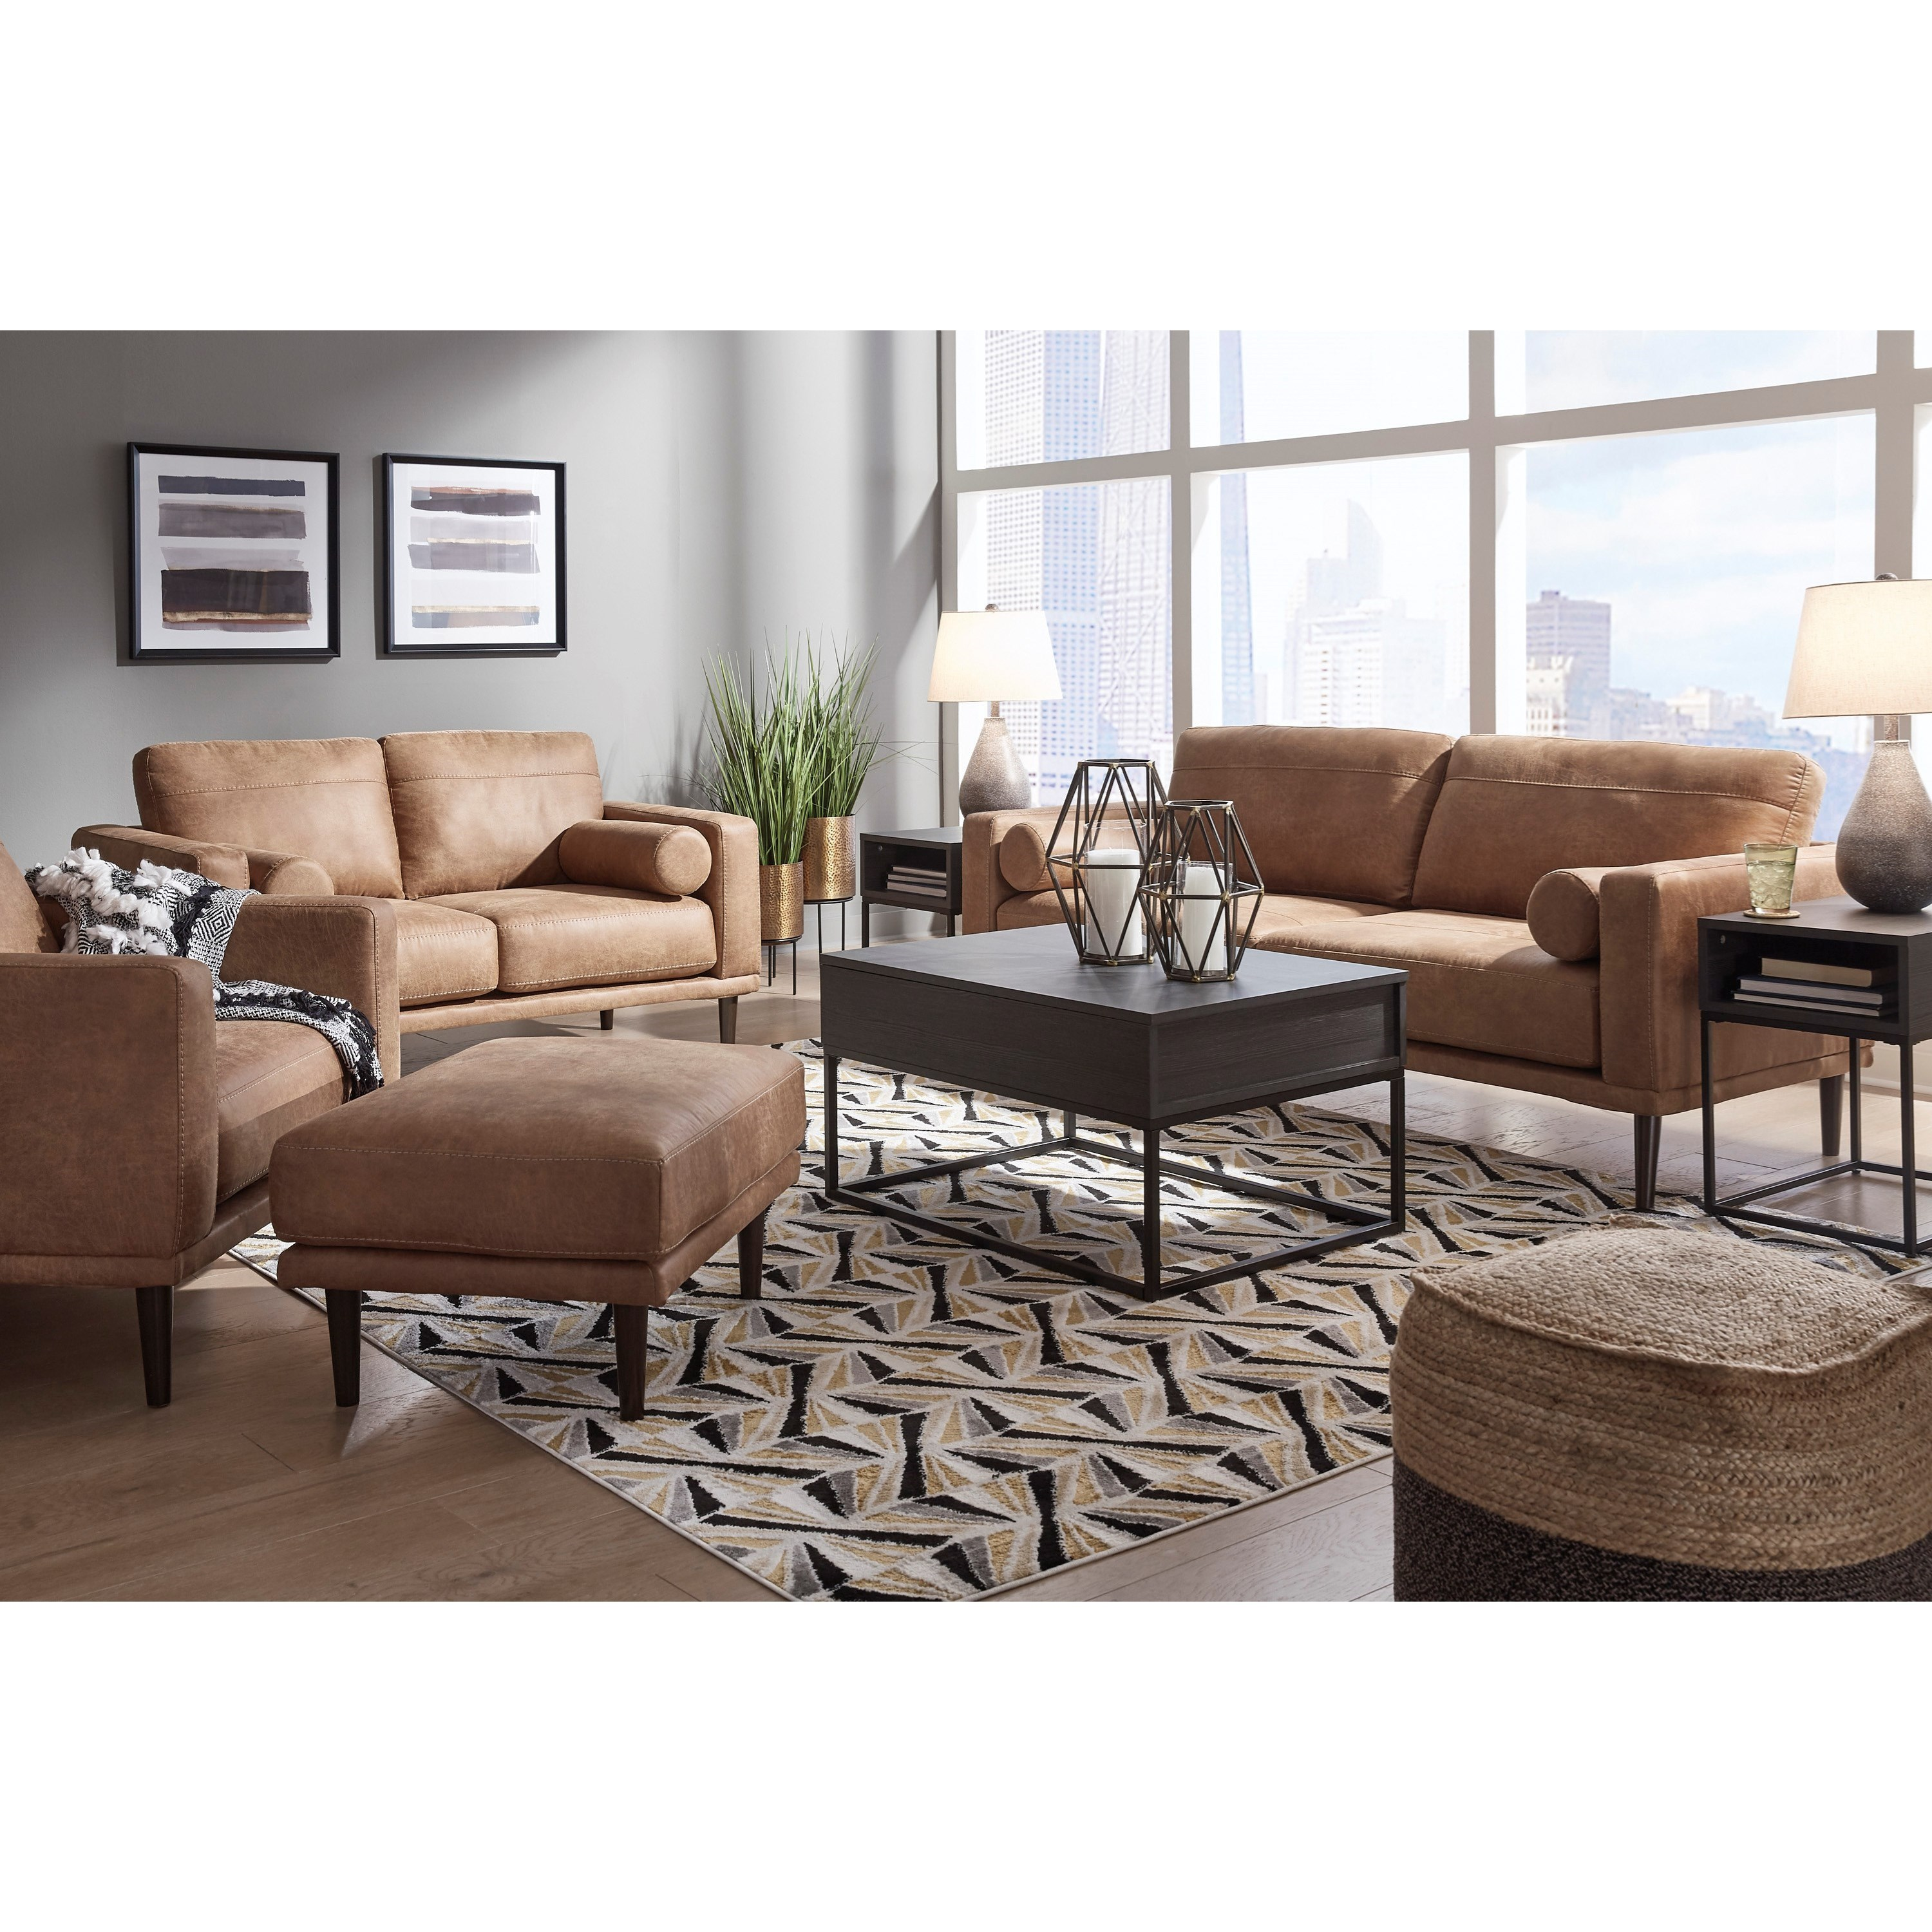 Arroyo Living Room Group by Signature Design by Ashley at Standard Furniture